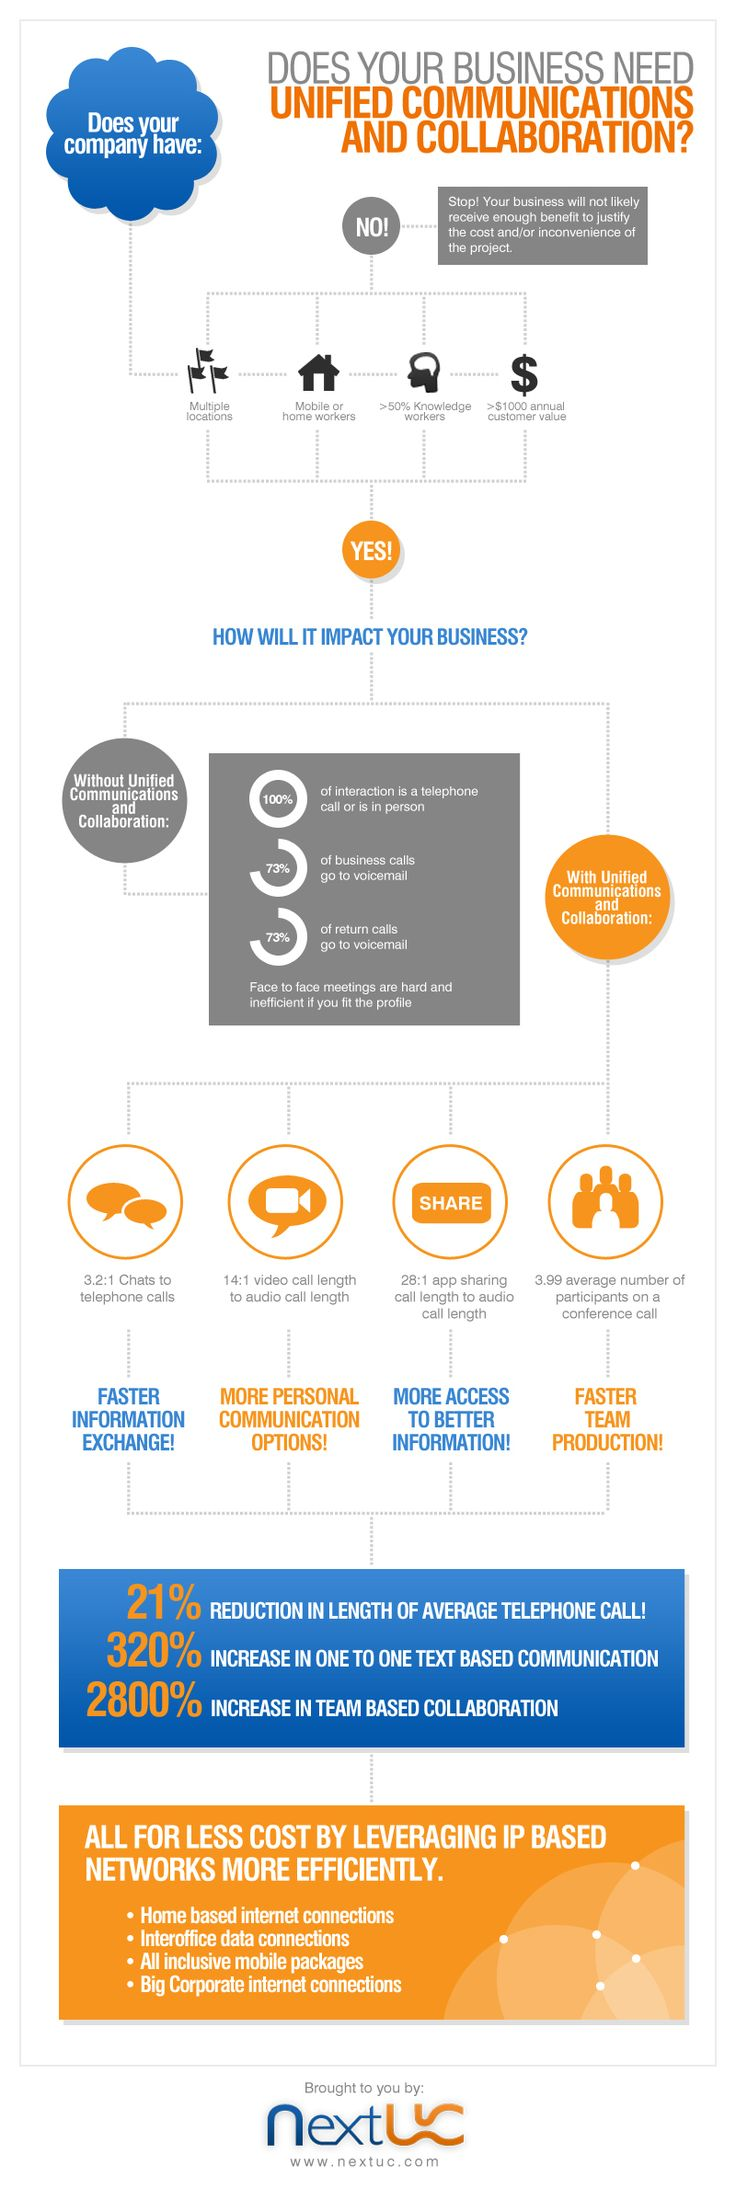 Unified communications and collaboration infographic - do you need it?